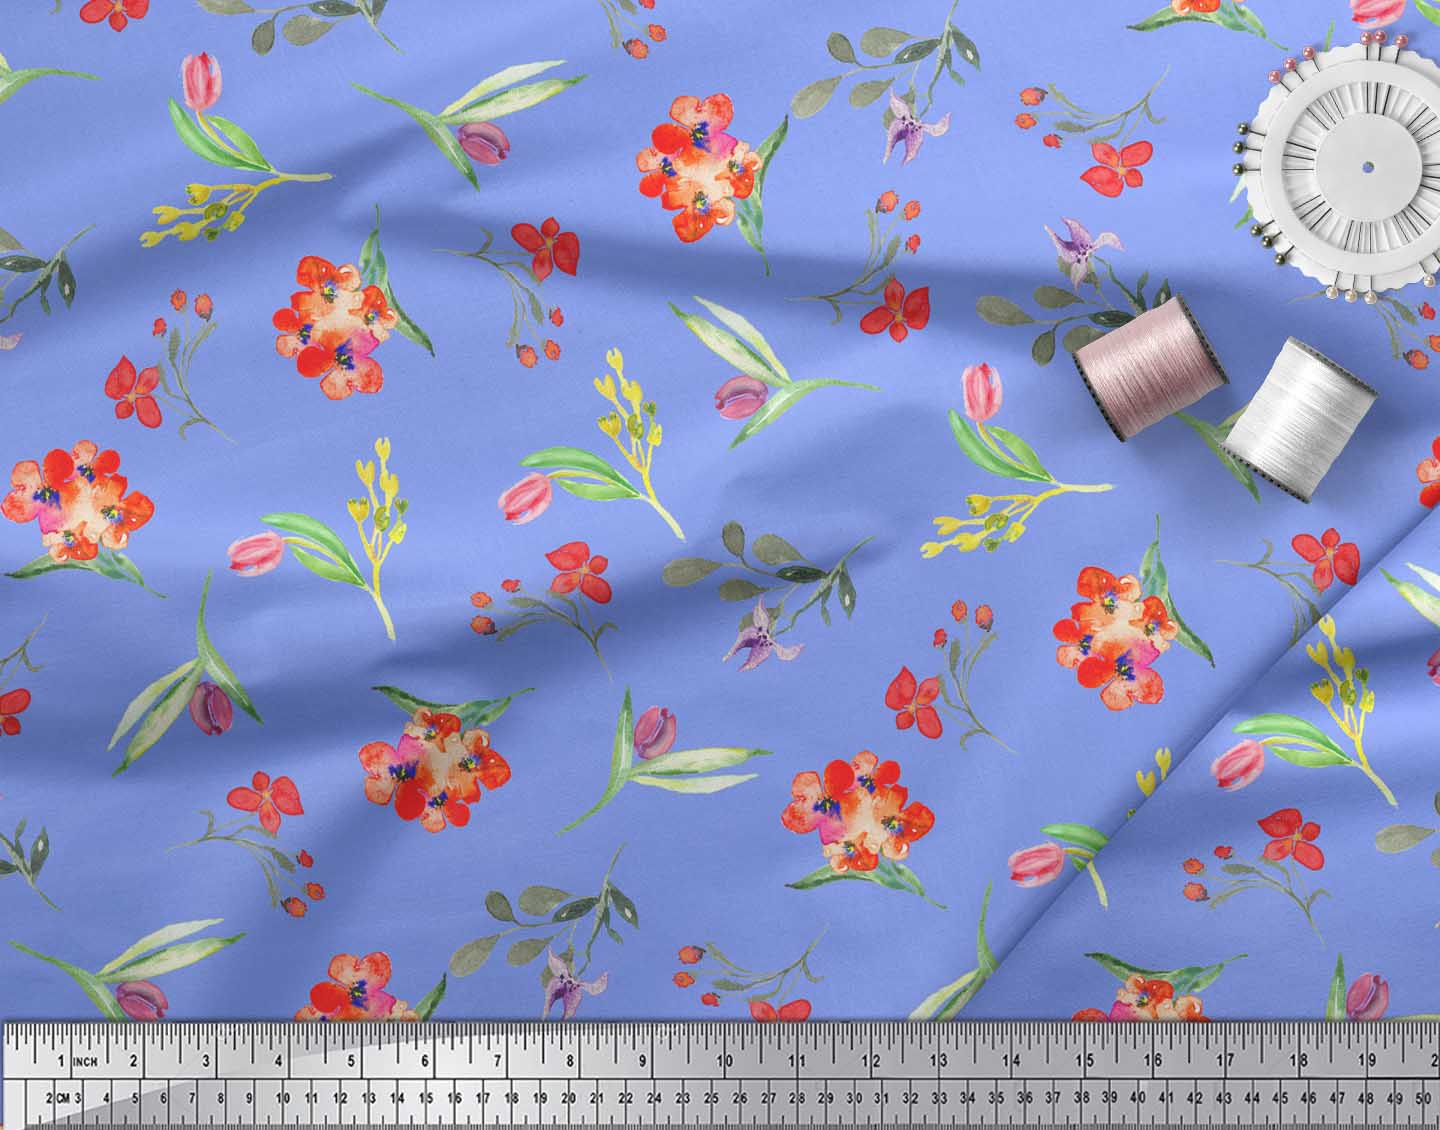 Soimoi-Blue-Cotton-Poplin-Fabric-Leaves-amp-Tulip-Floral-Printed-Craft-au0 thumbnail 3